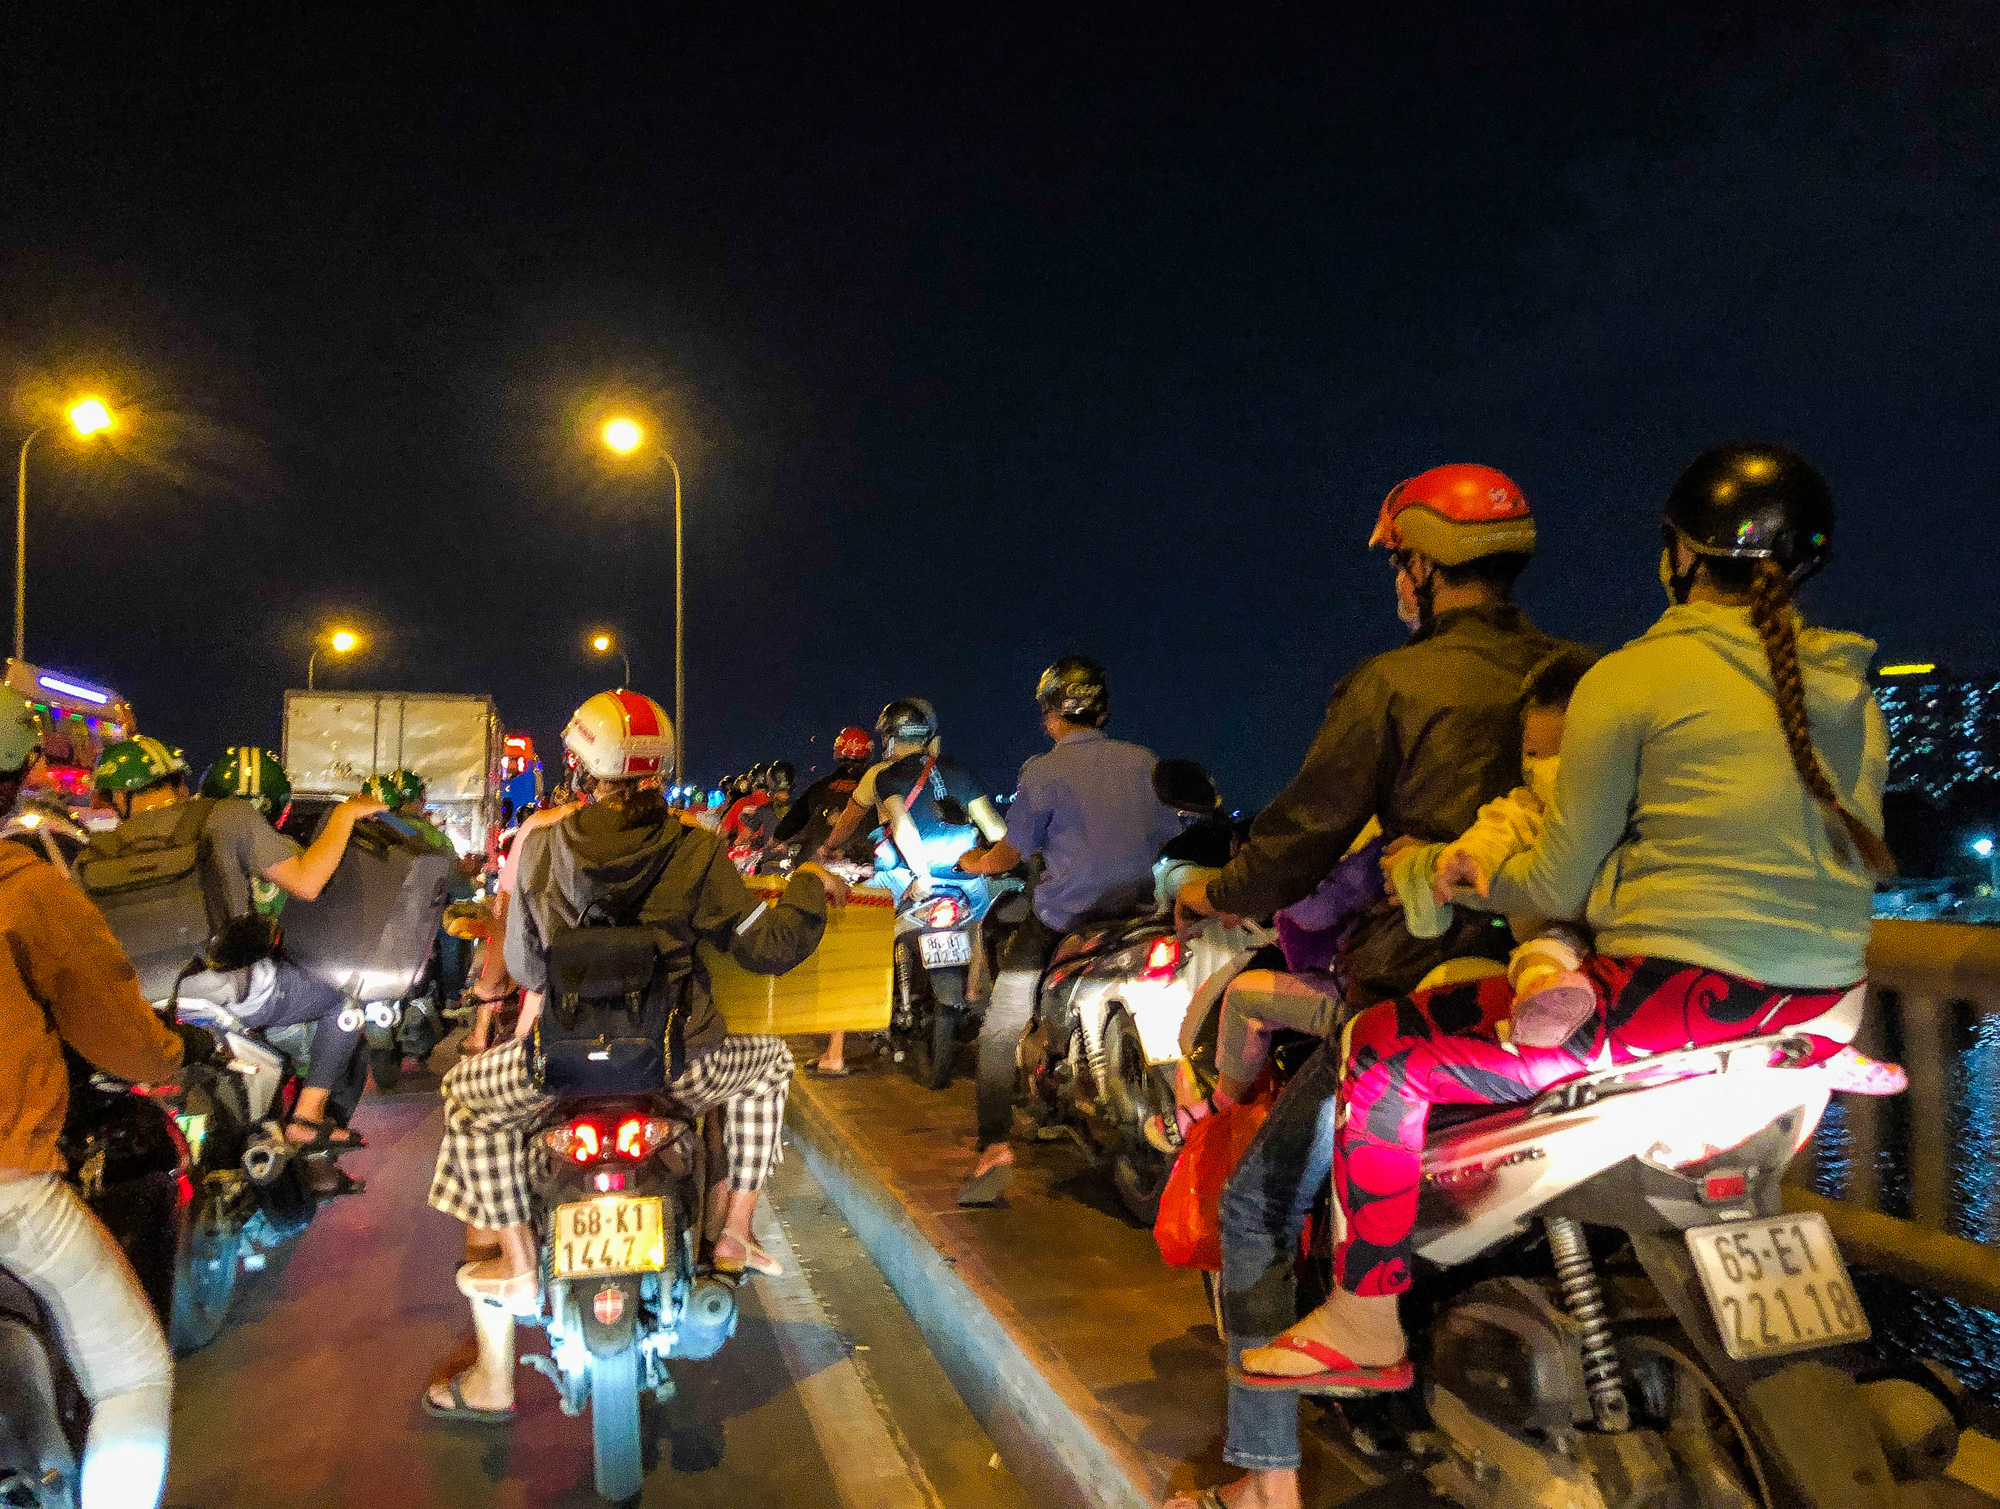 Motorcyclists travel on the sidewalk of Binh Trieu Bridge due to serious traffic congestion on April 29, 2021. Photo: Chau Tuan / Tuoi Tre